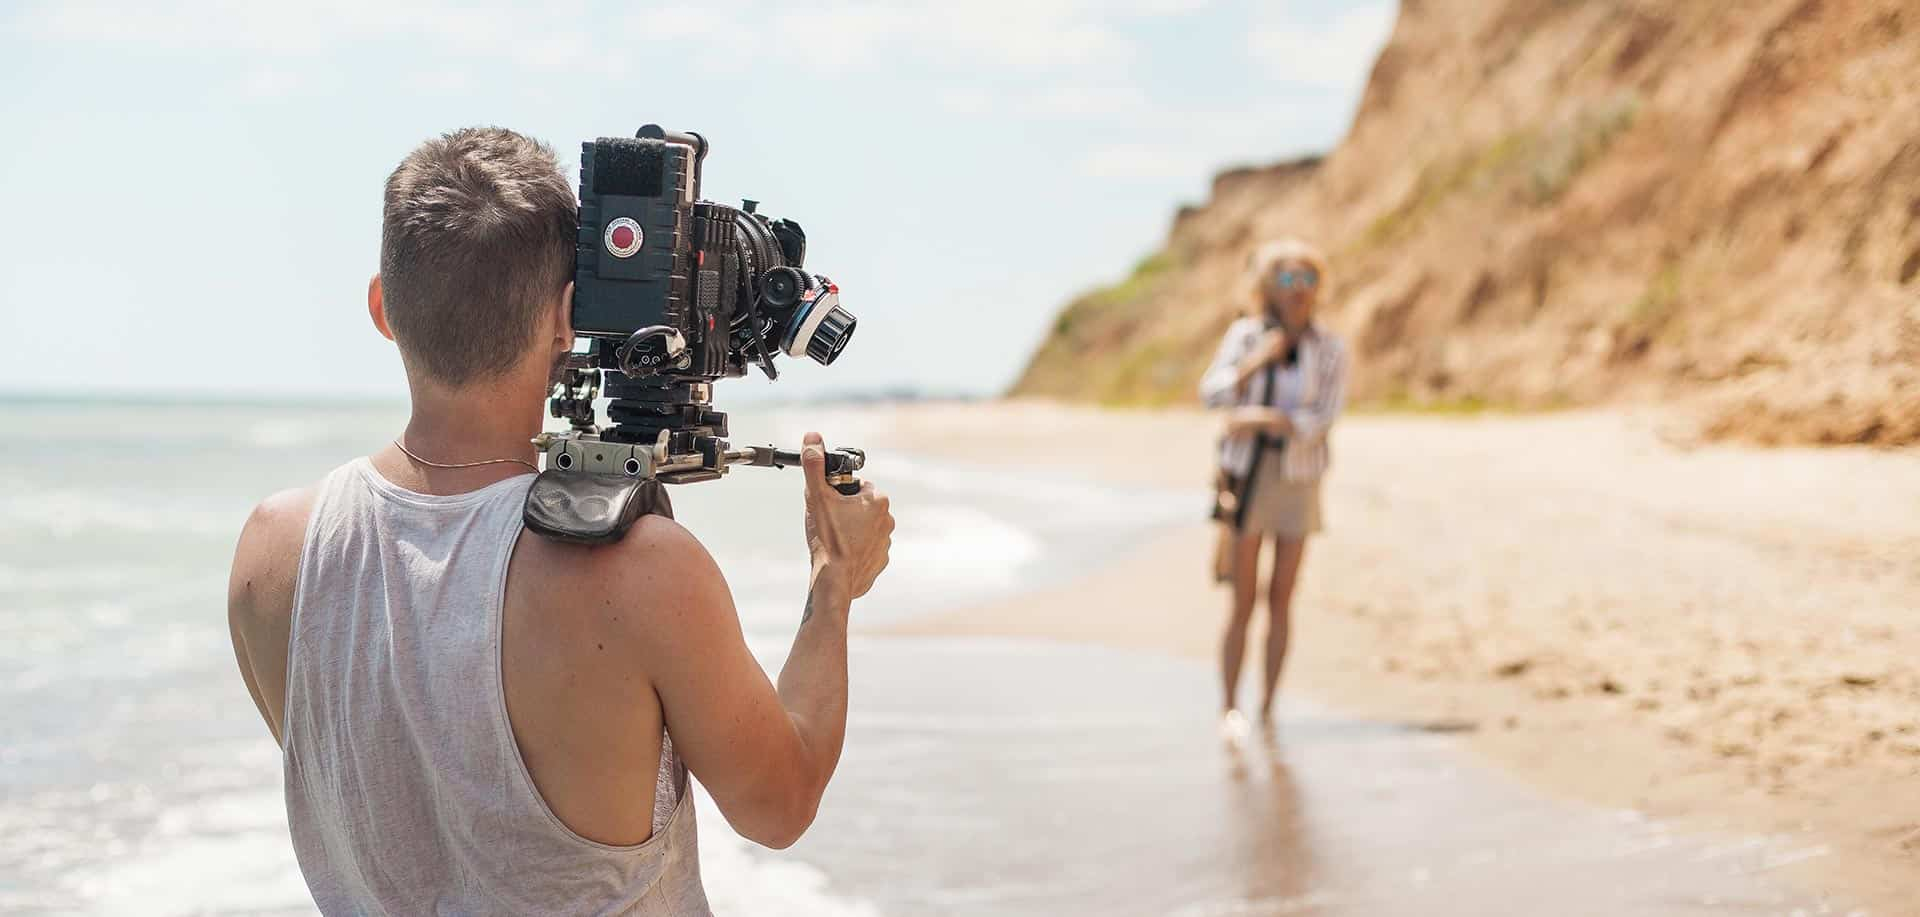 filmmaker is making video with the woman at the beach.